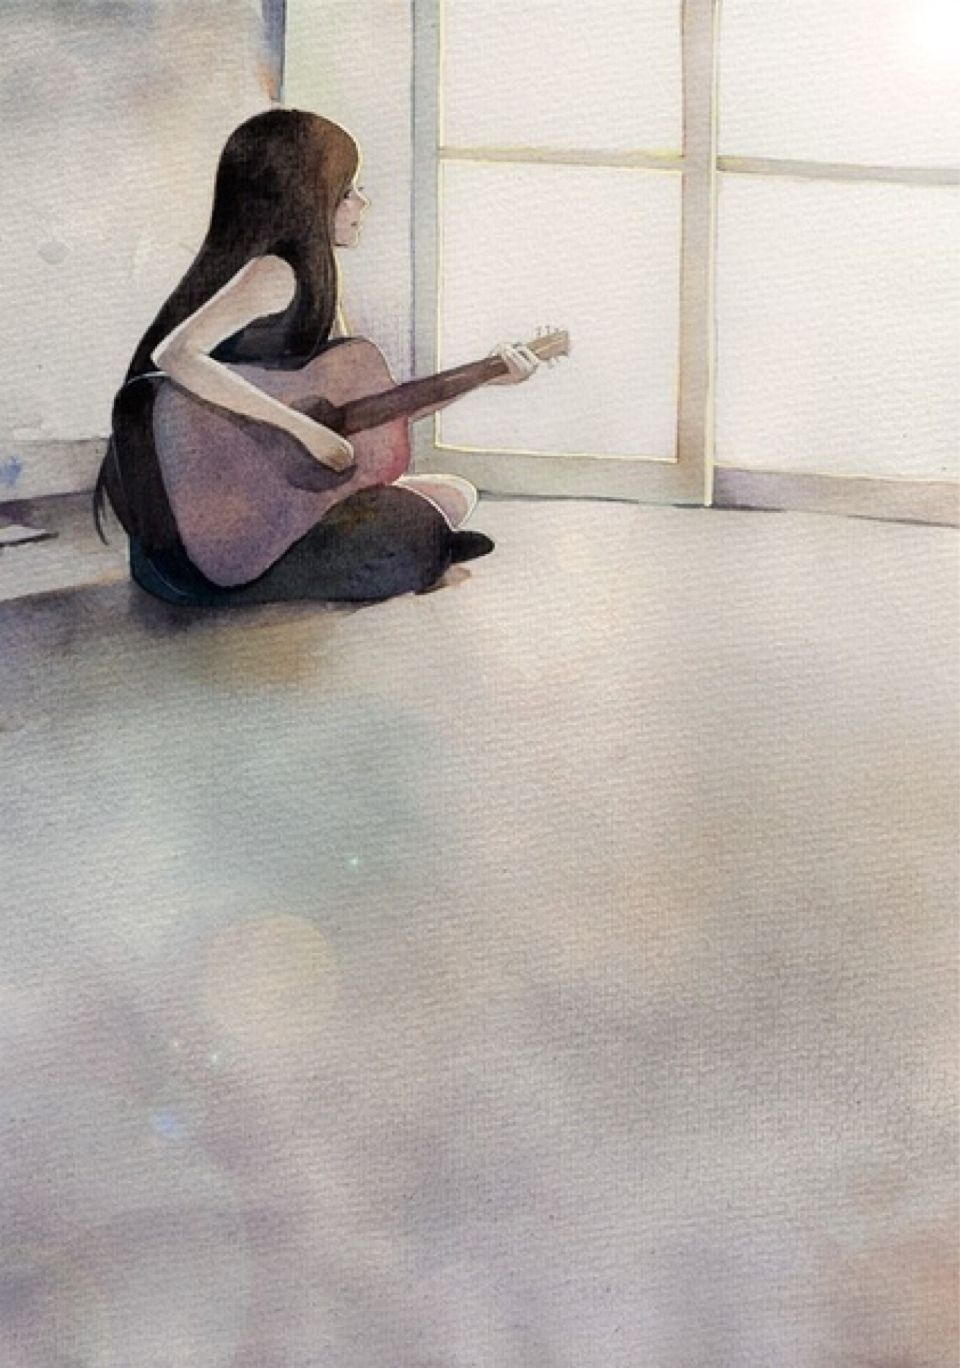 Guitar playing girl feeling alone like me sometimes